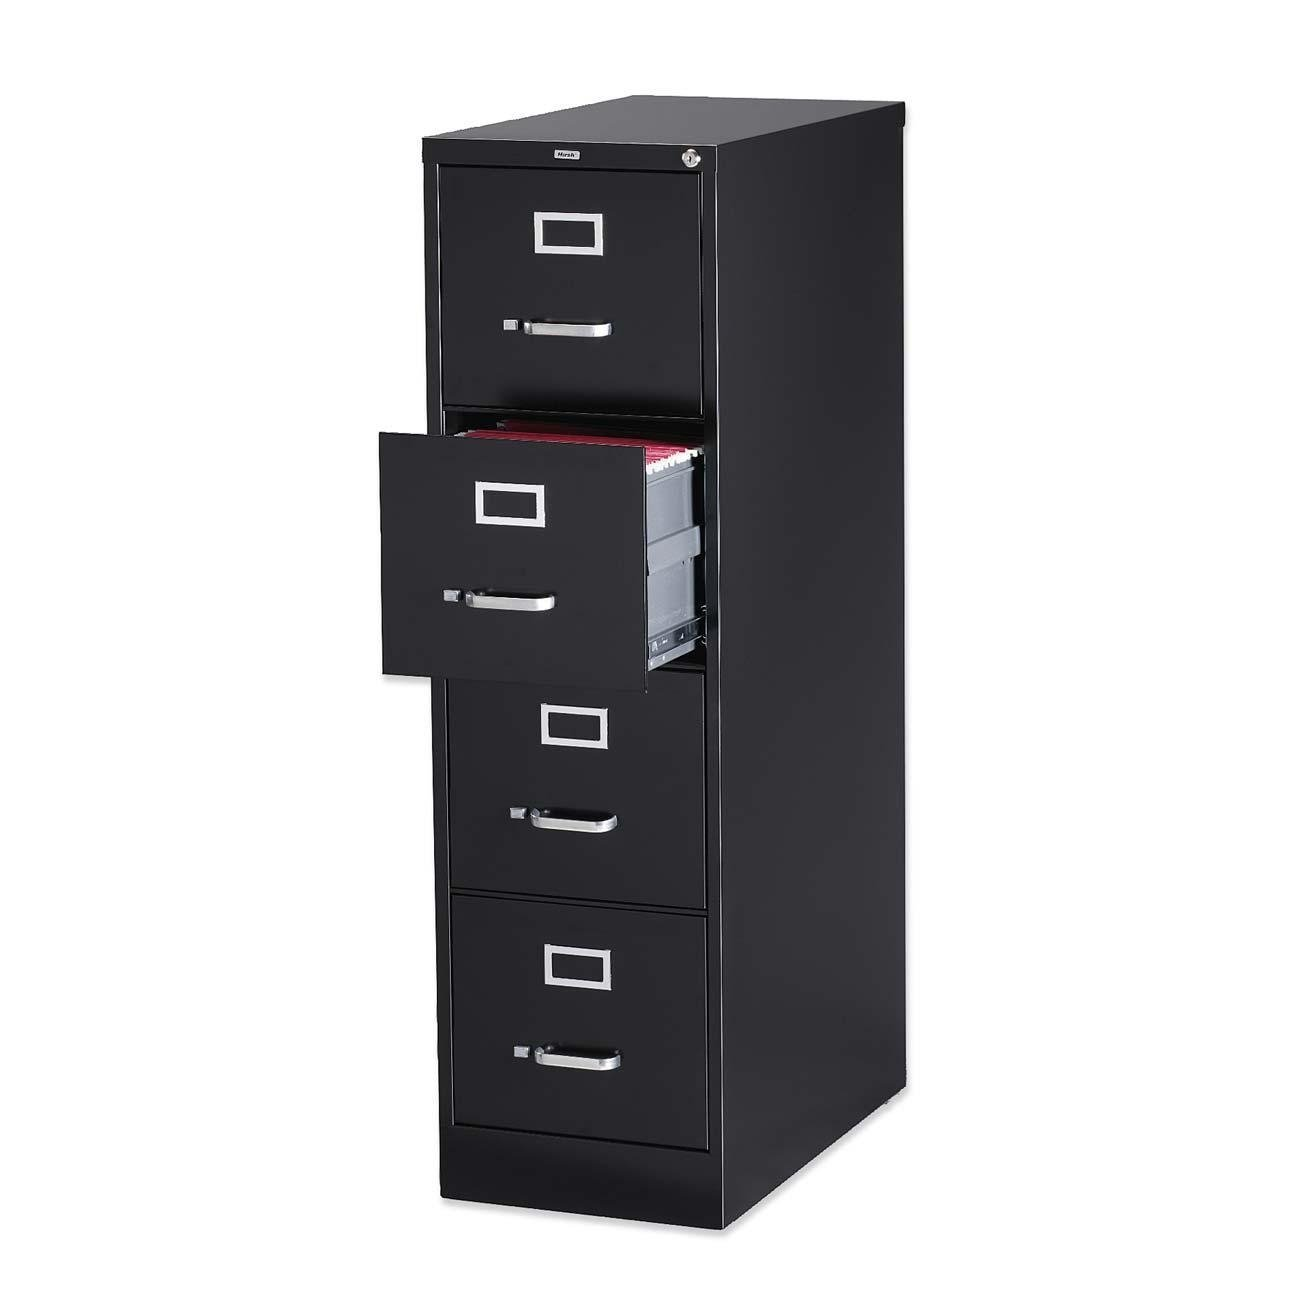 chic 4 Drawer fireproof file cabinet in Dark Color with silver handle for home office furniture ideas